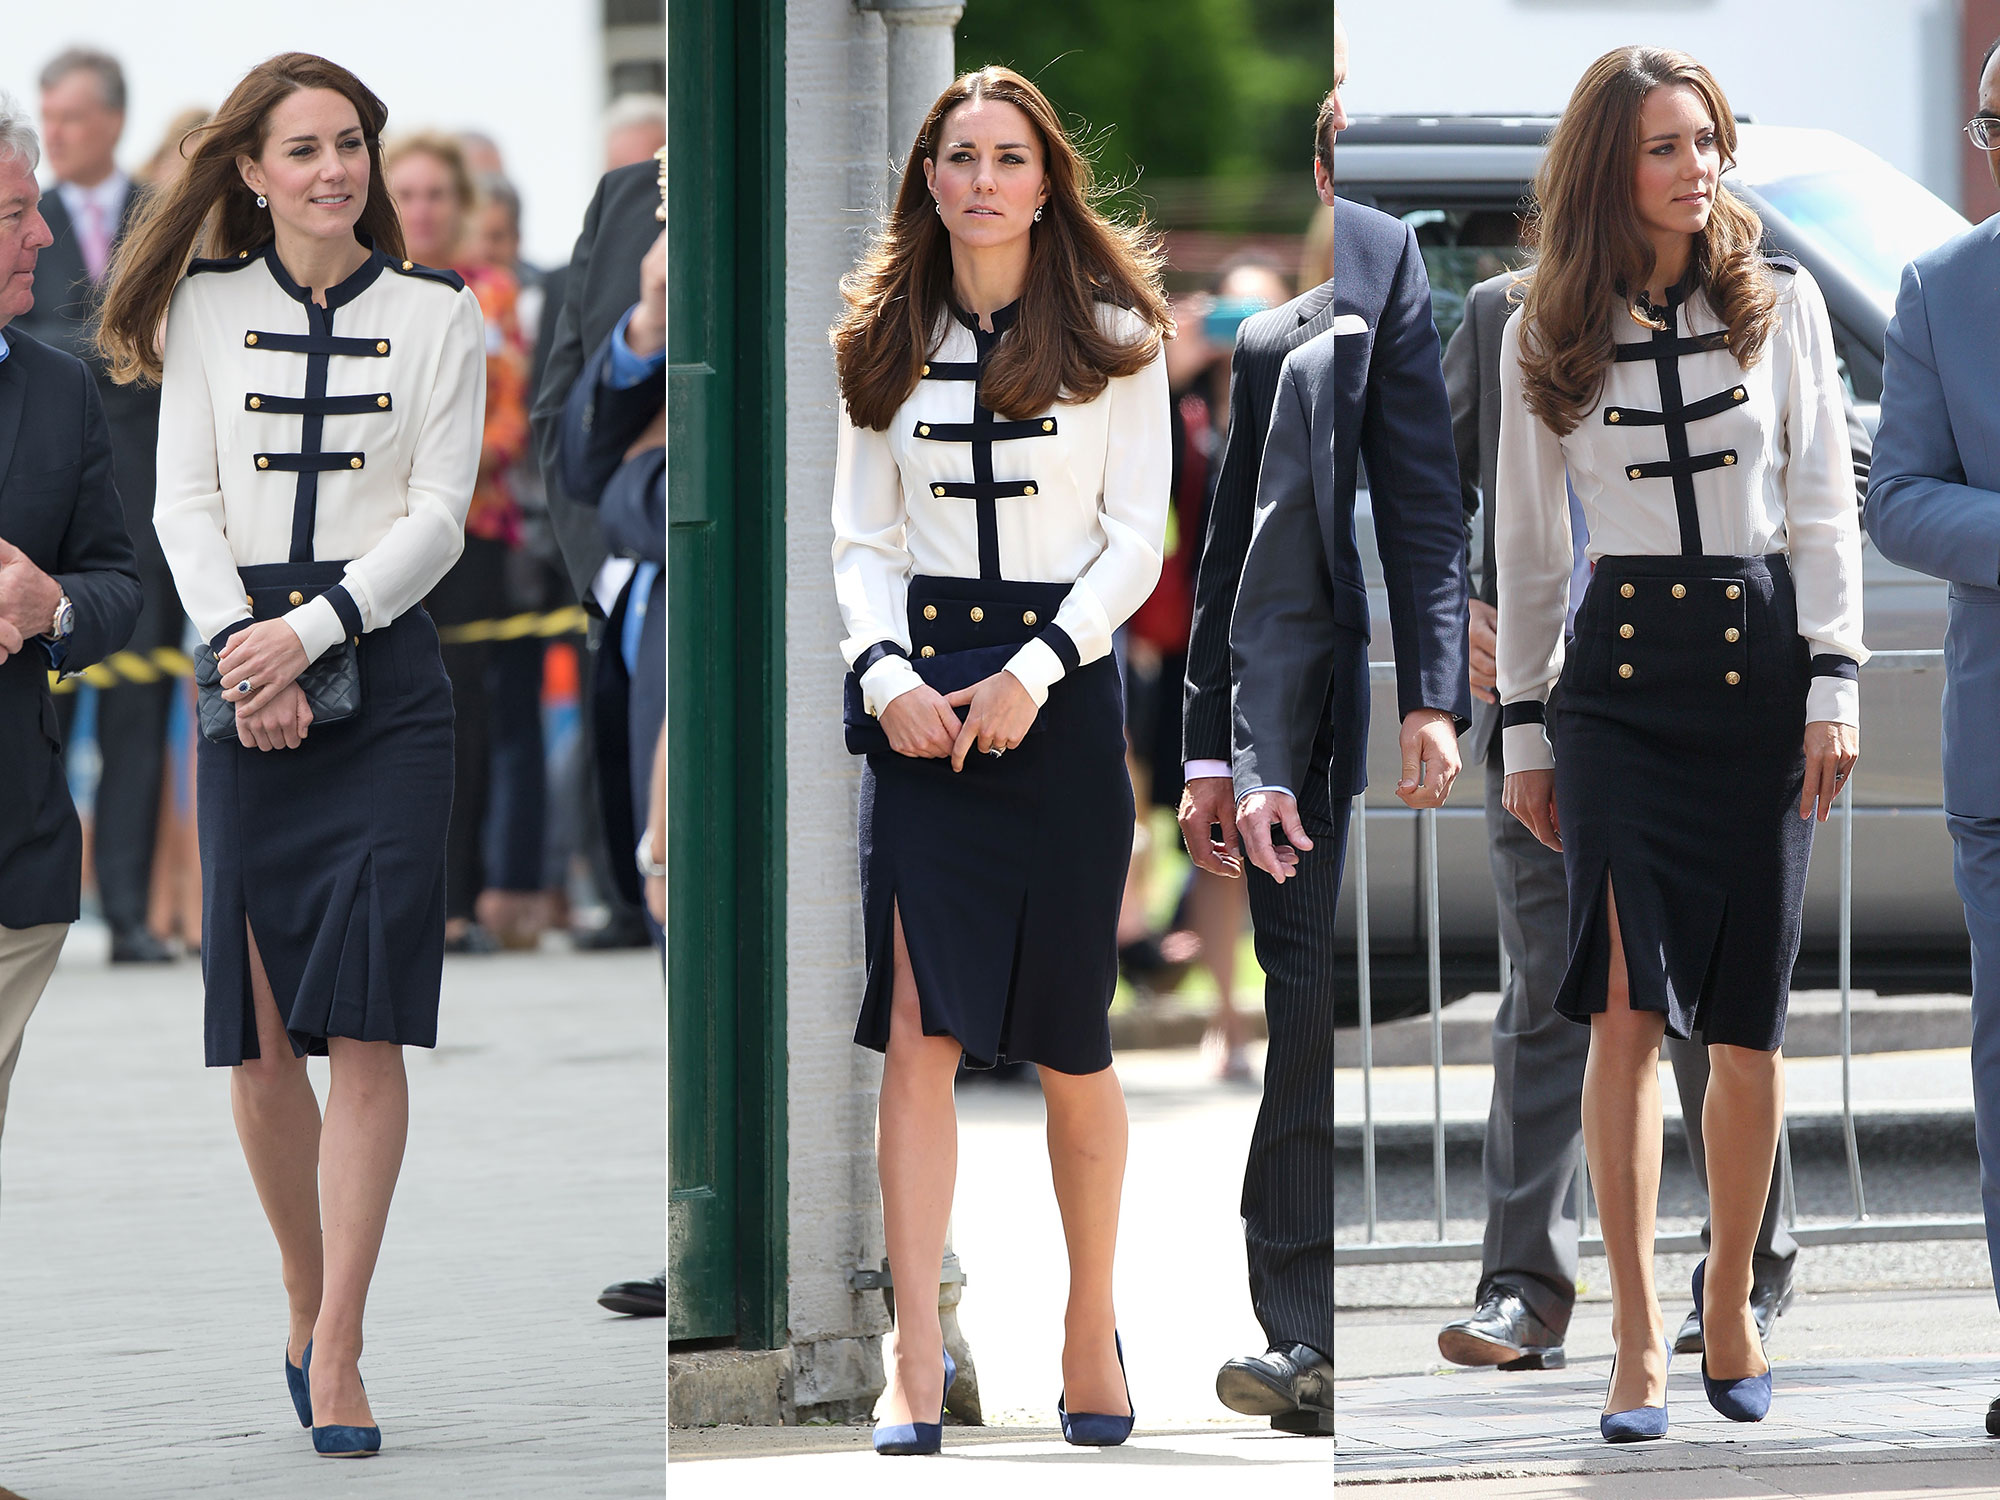 Nautical-Inspired Alexander McQueen Outfit